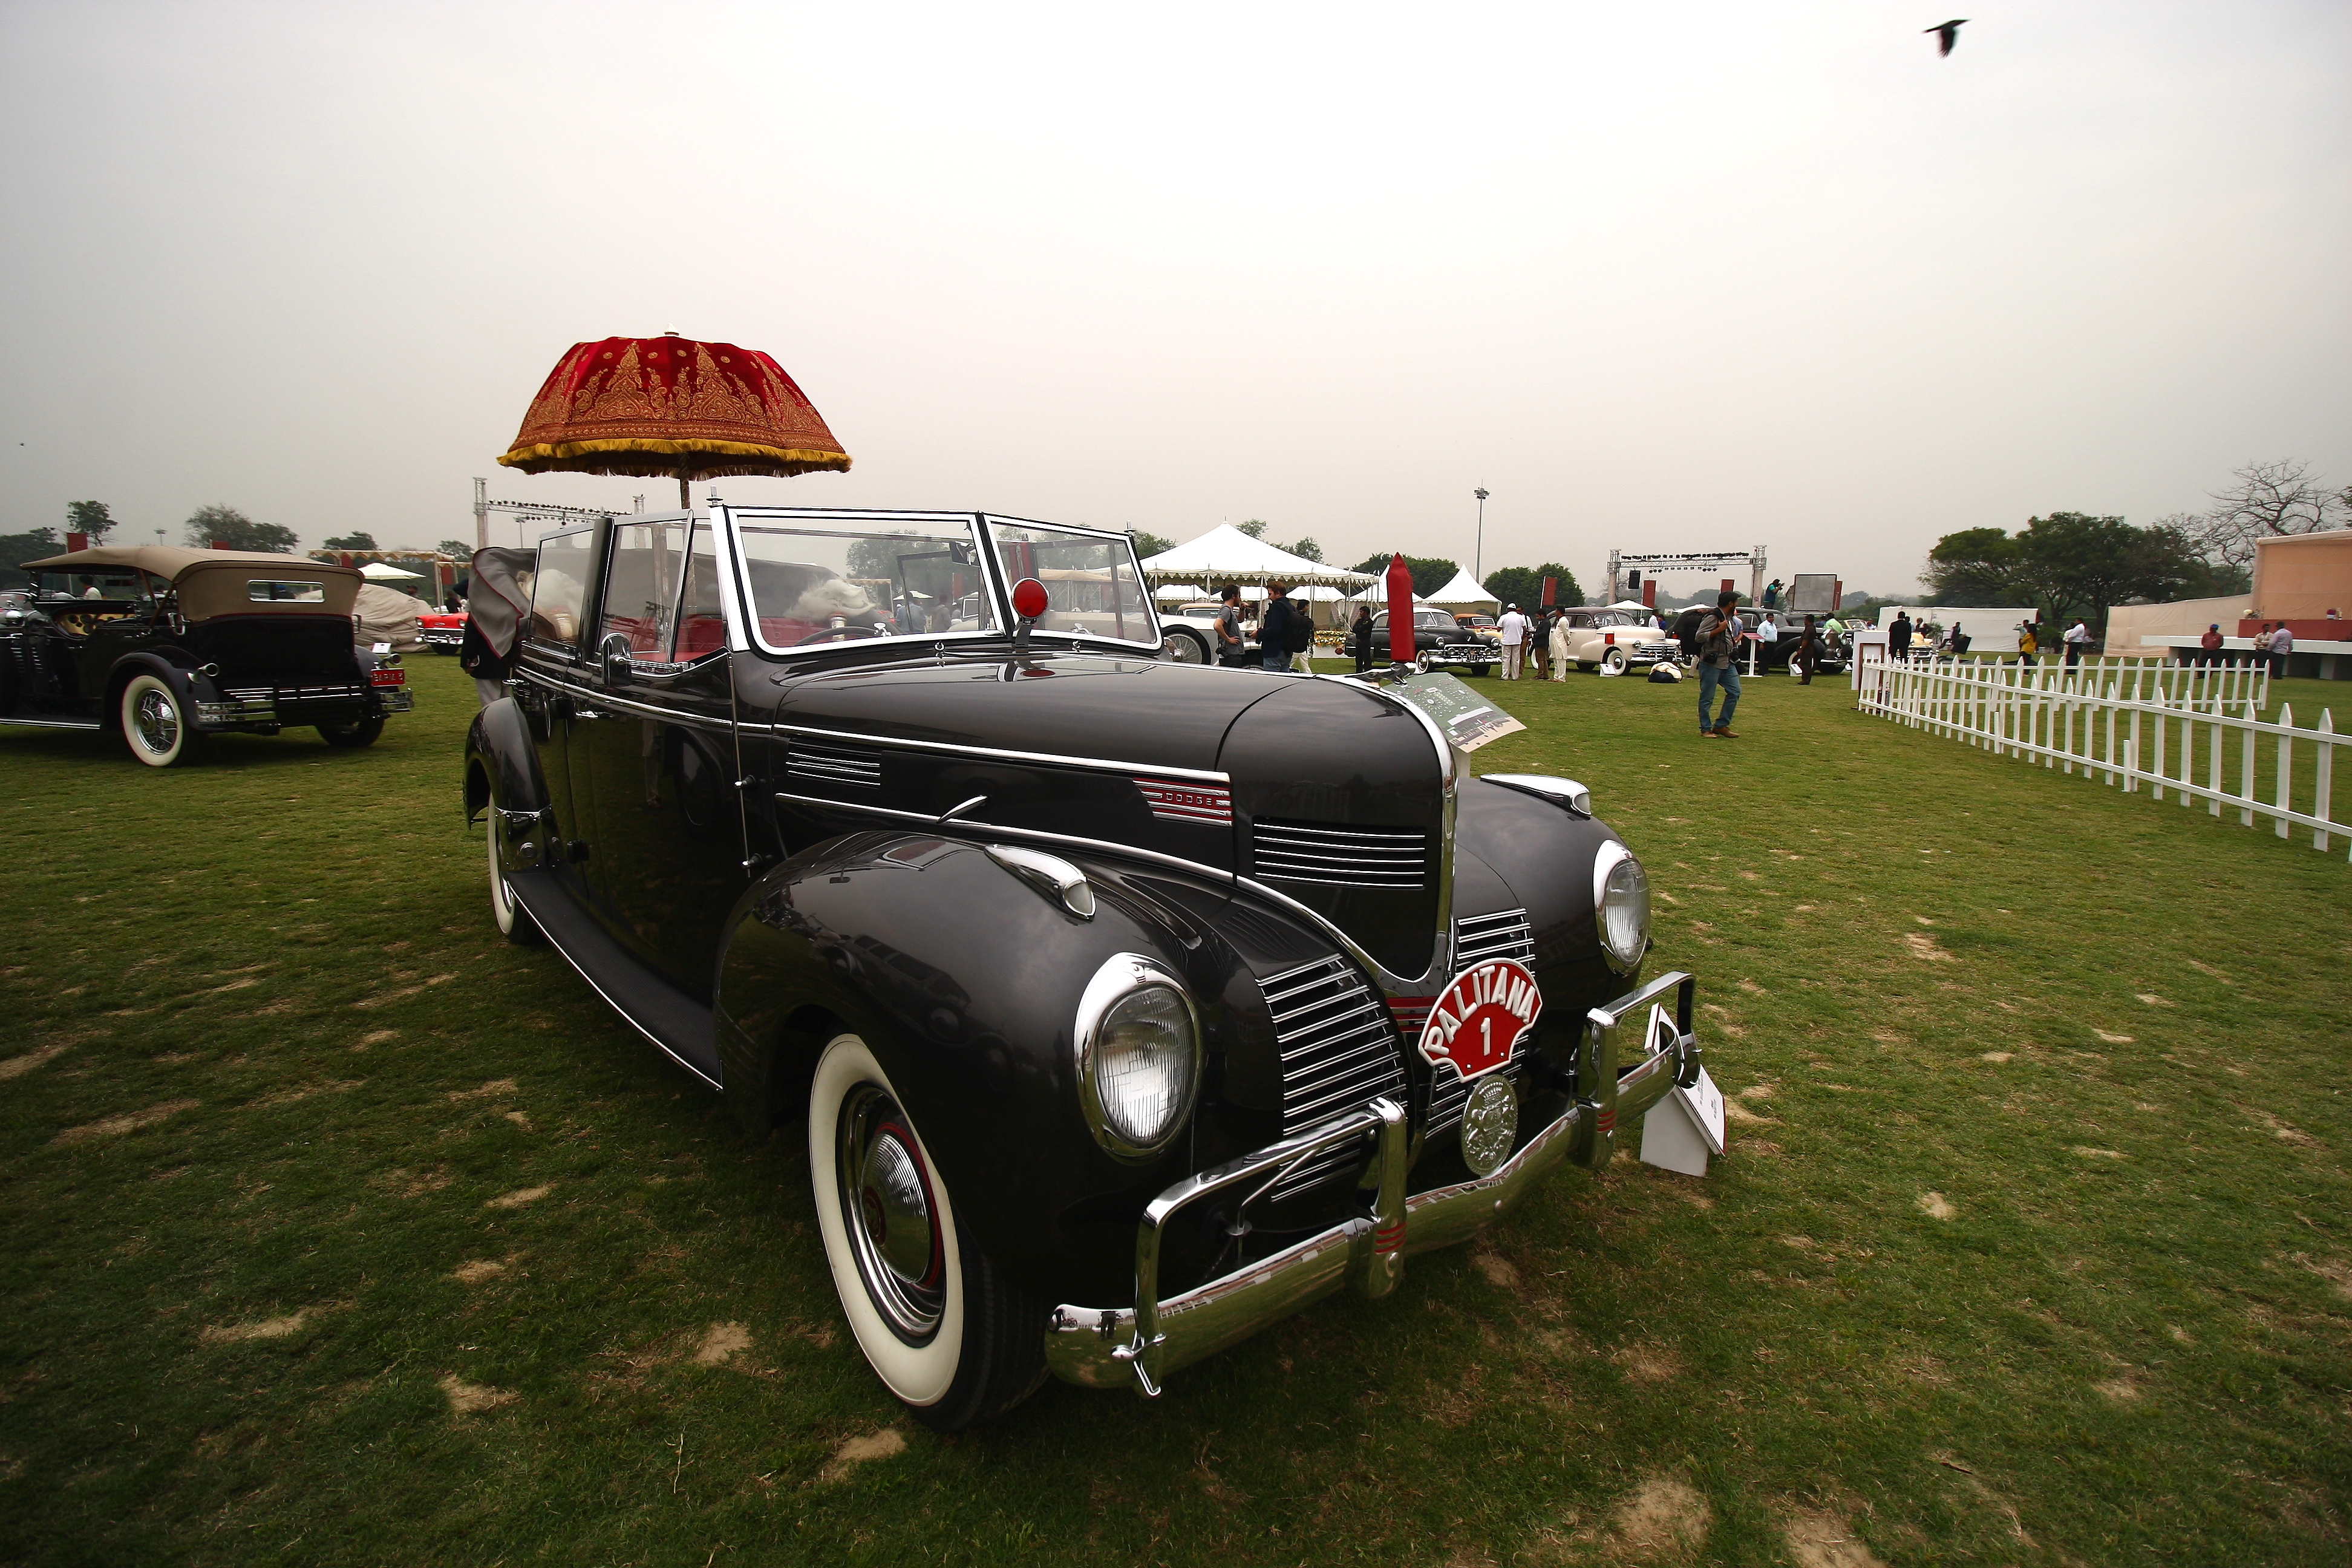 Auto Expo: An Indian lawyer's incredible collection of